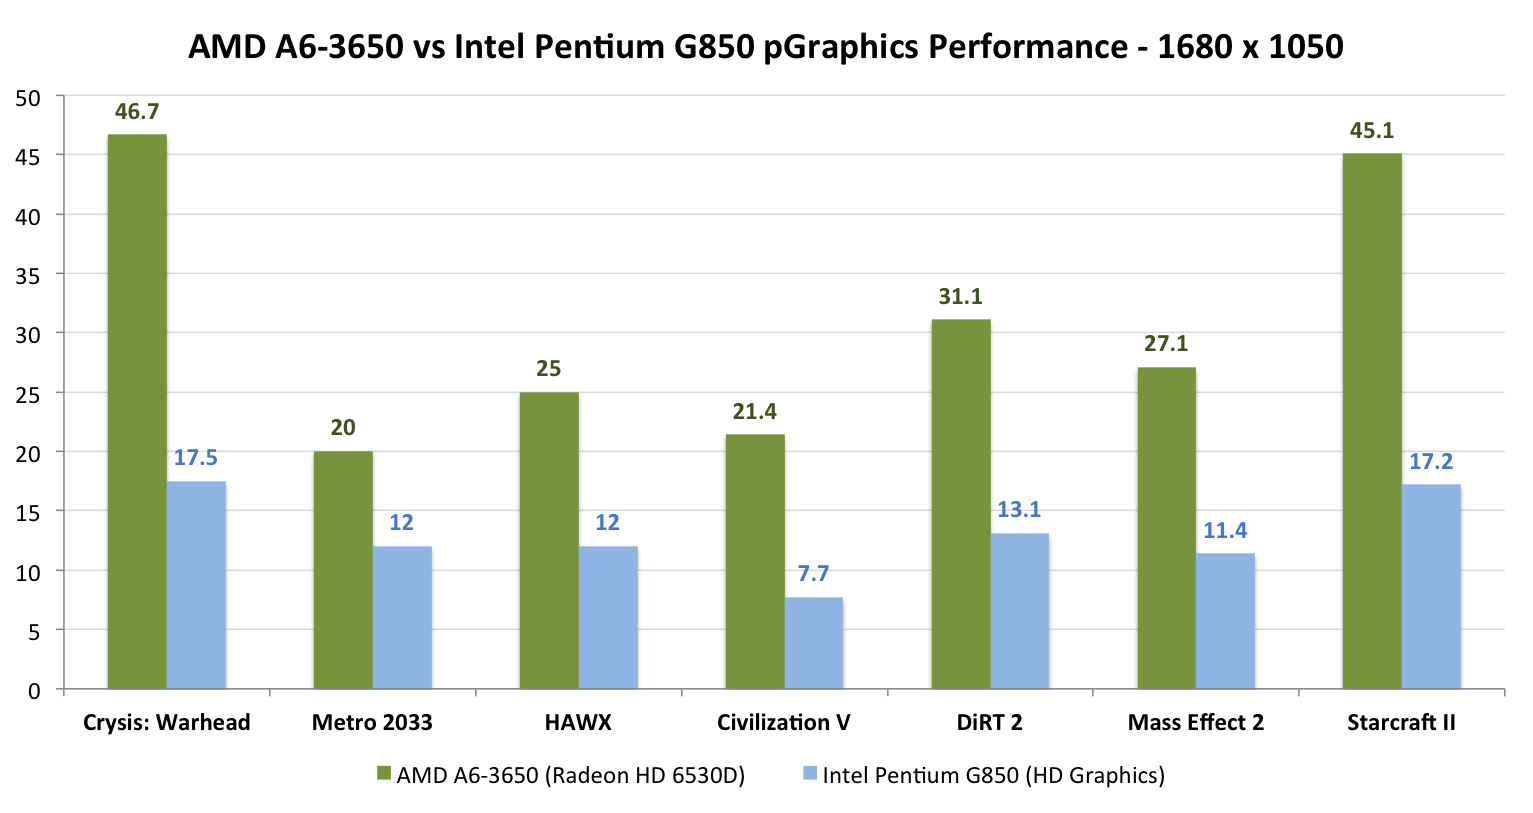 Processor Graphics Performance The Sandy Bridge Pentium Review 1 Block Diagram Theres Simply No Competition And At These Frame Rates Even 1024 X 768 I Wouldnt Consider G850s Playable Unless You Go To Older Games Or